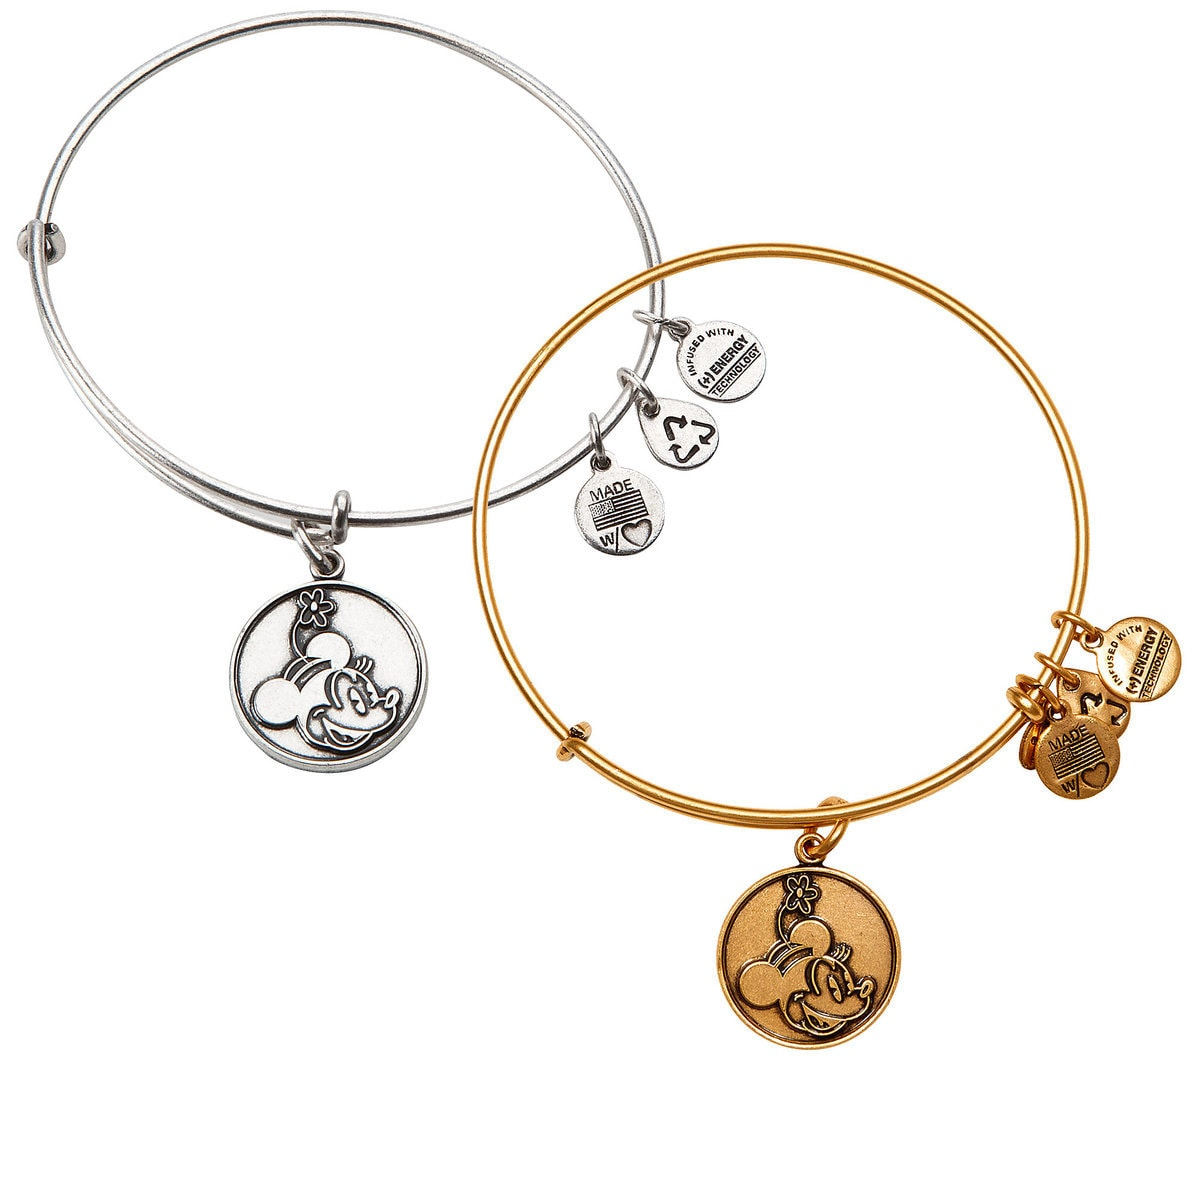 c188b41c9 Product Image of Minnie Mouse Bangle by Alex and Ani # 1